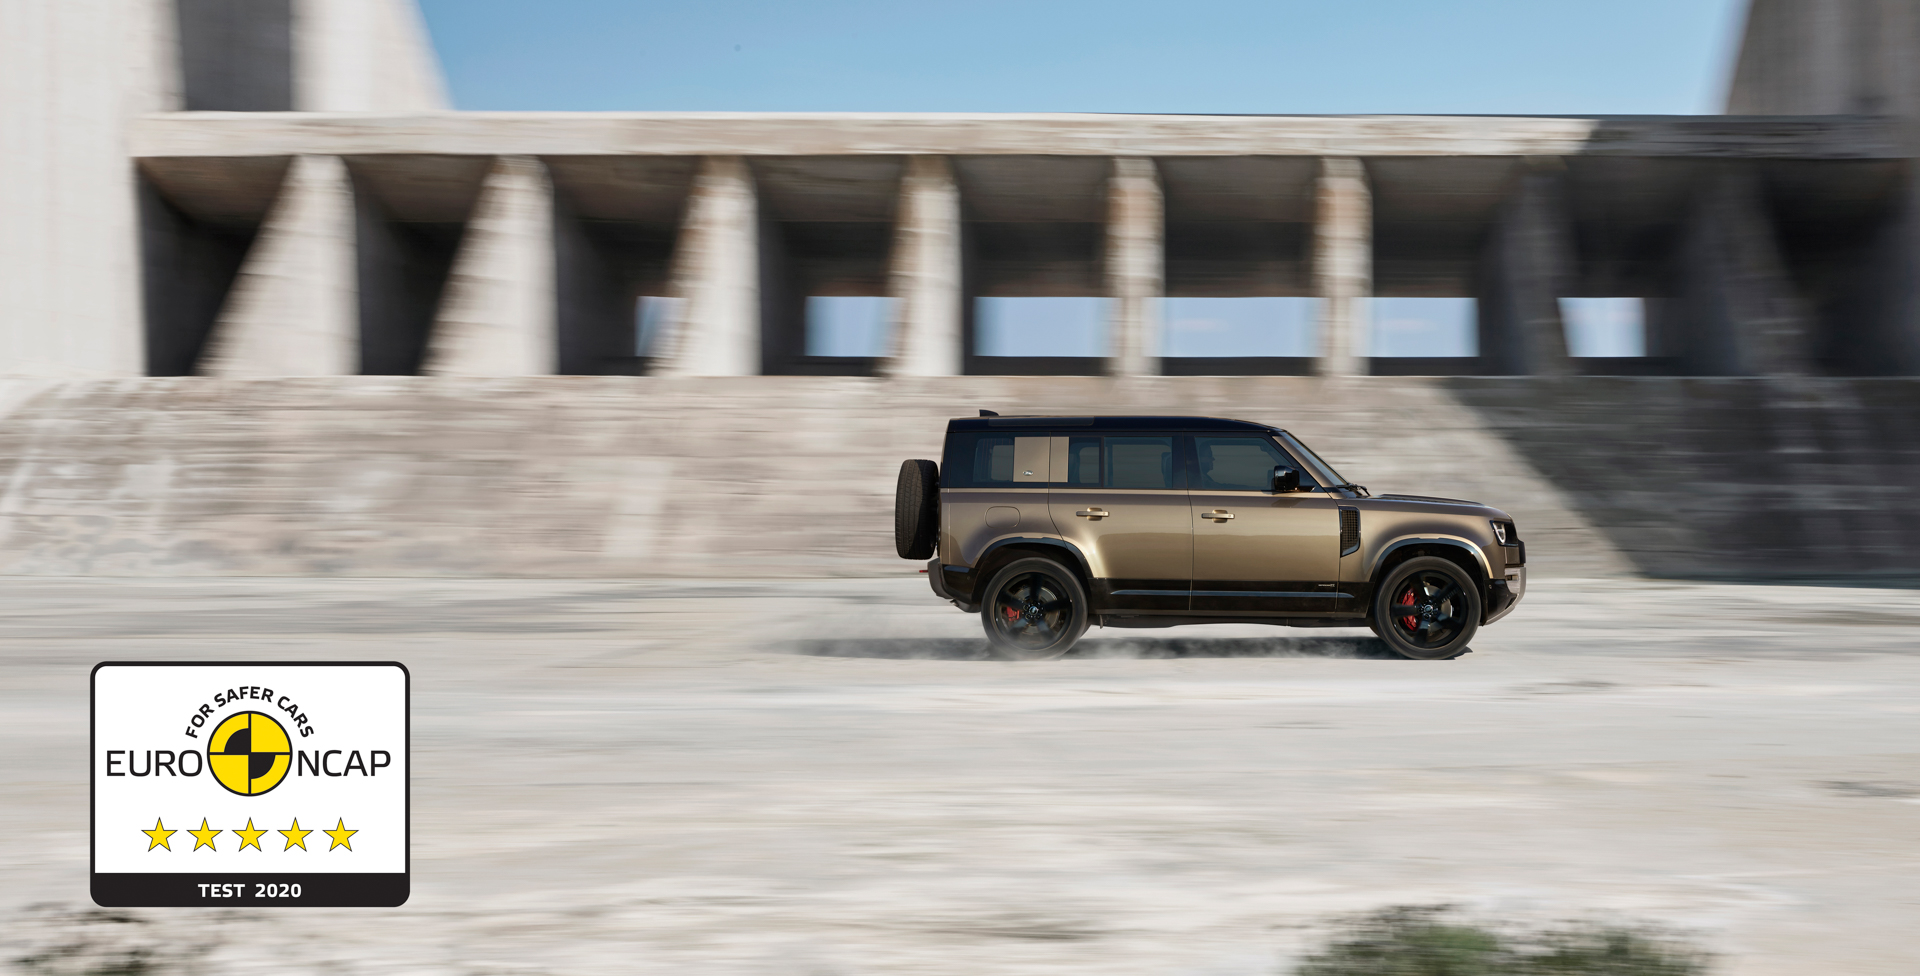 5-STAR EURO NCAP SAFETY RATING FOR THE LAND ROVER DEFENDER 110